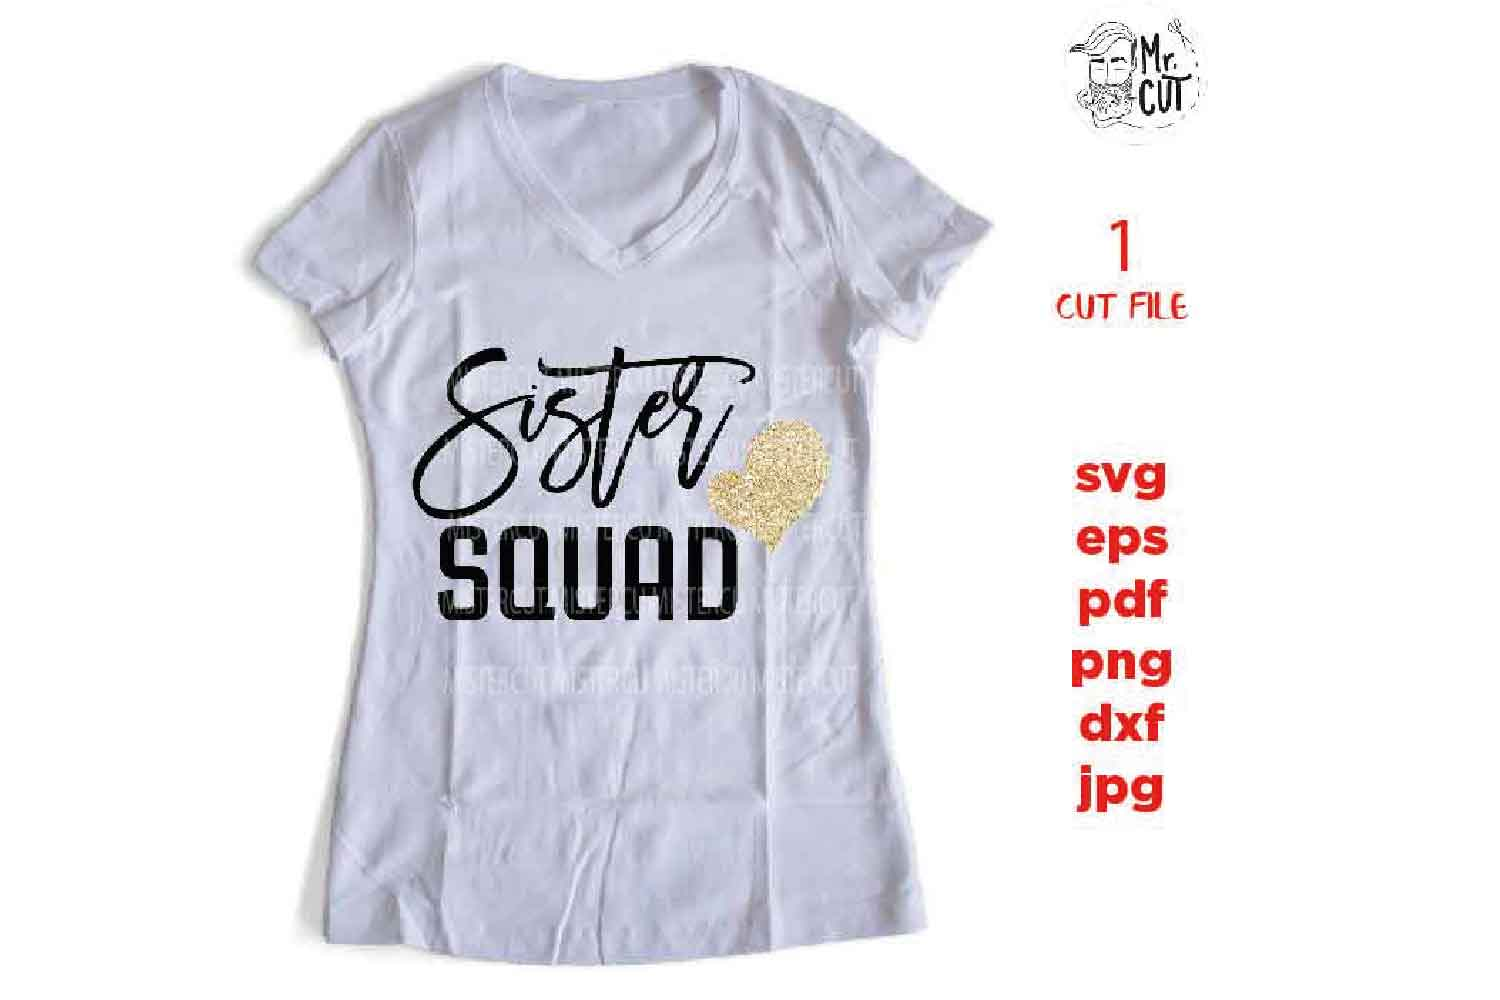 sister squad svg, dxf, jpg reverse, cut file, Gifts for Wome example image 3